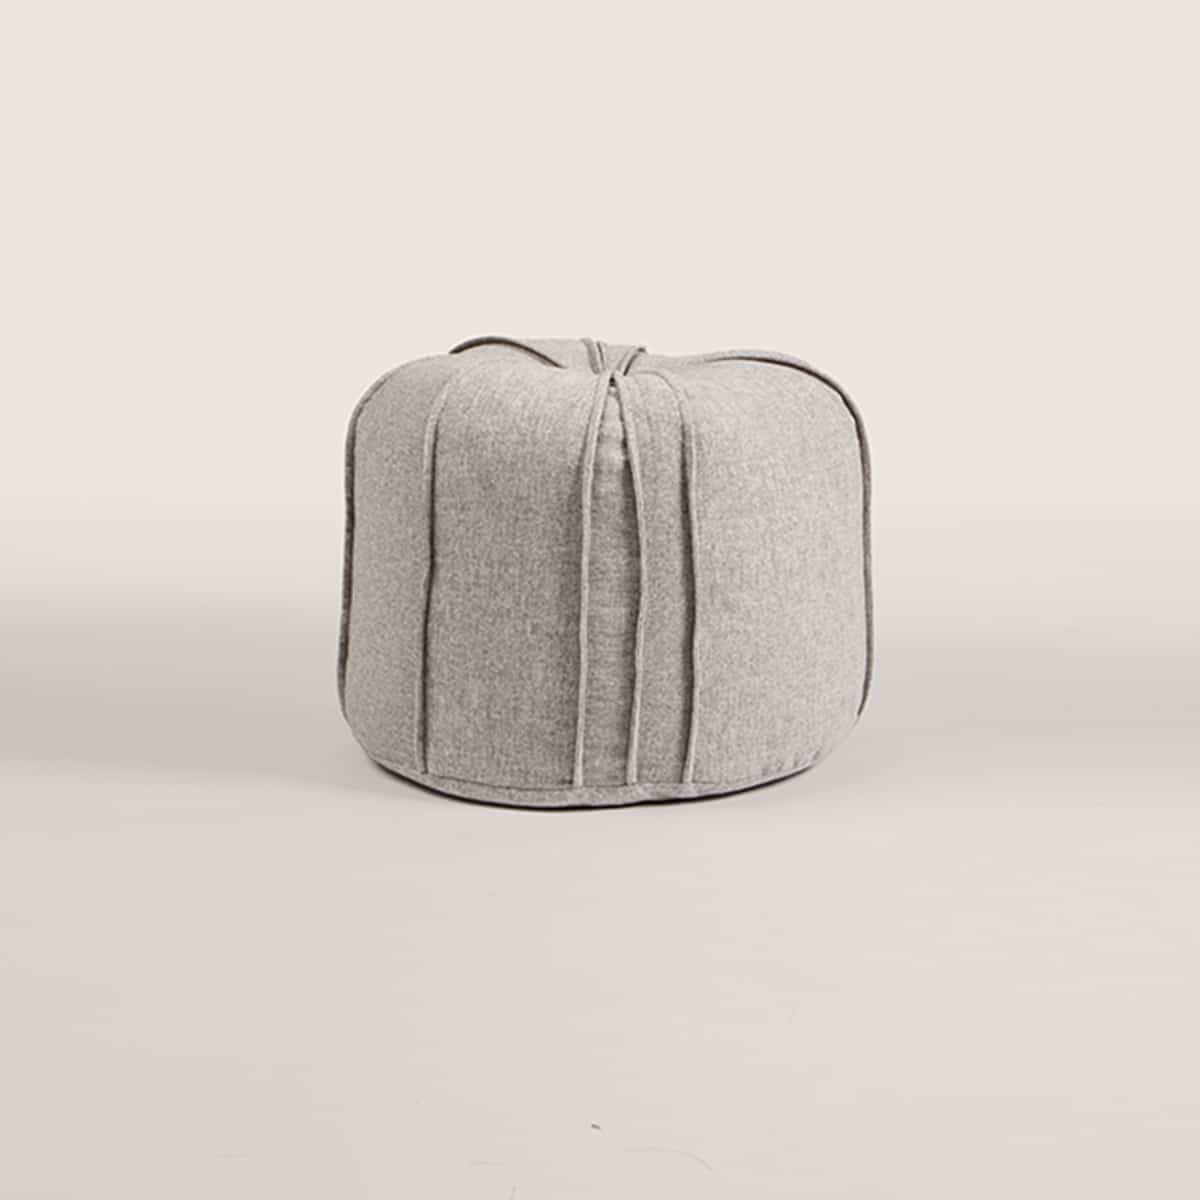 pouf eliot the elegant saintesprit gris zeeloft 1